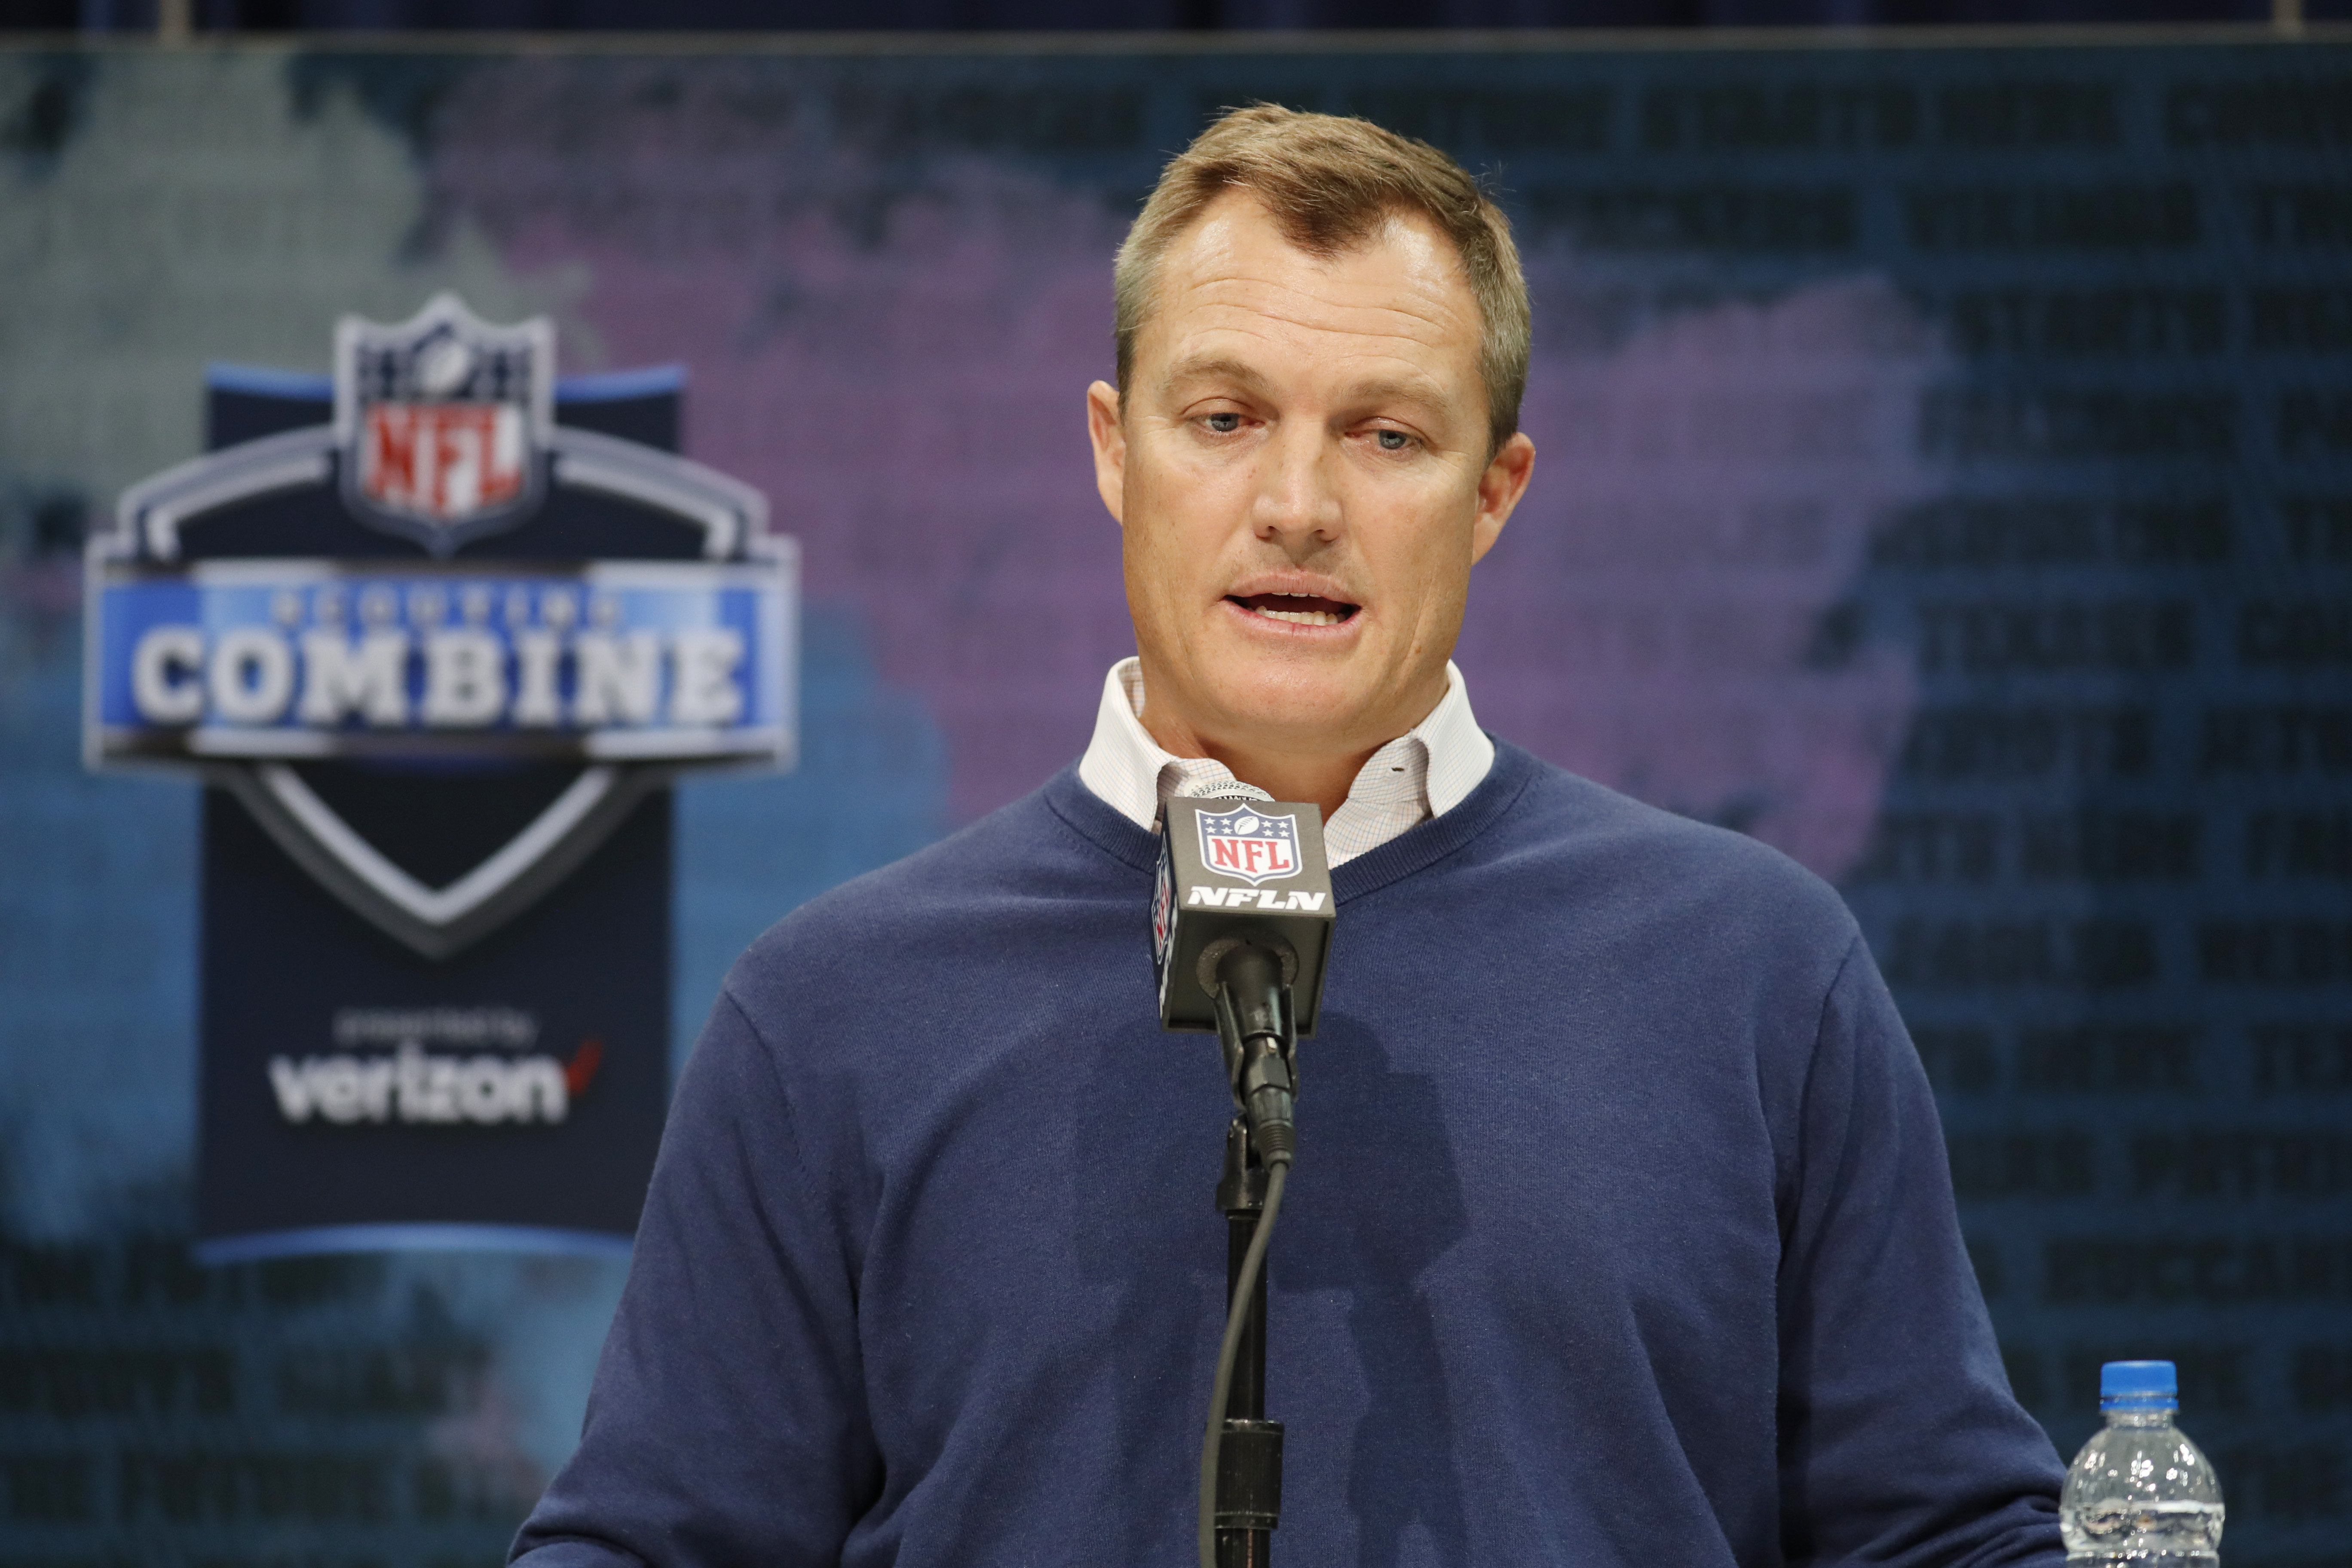 Three Takeaways From 49ers GM John Lynch's Combine Press Conference